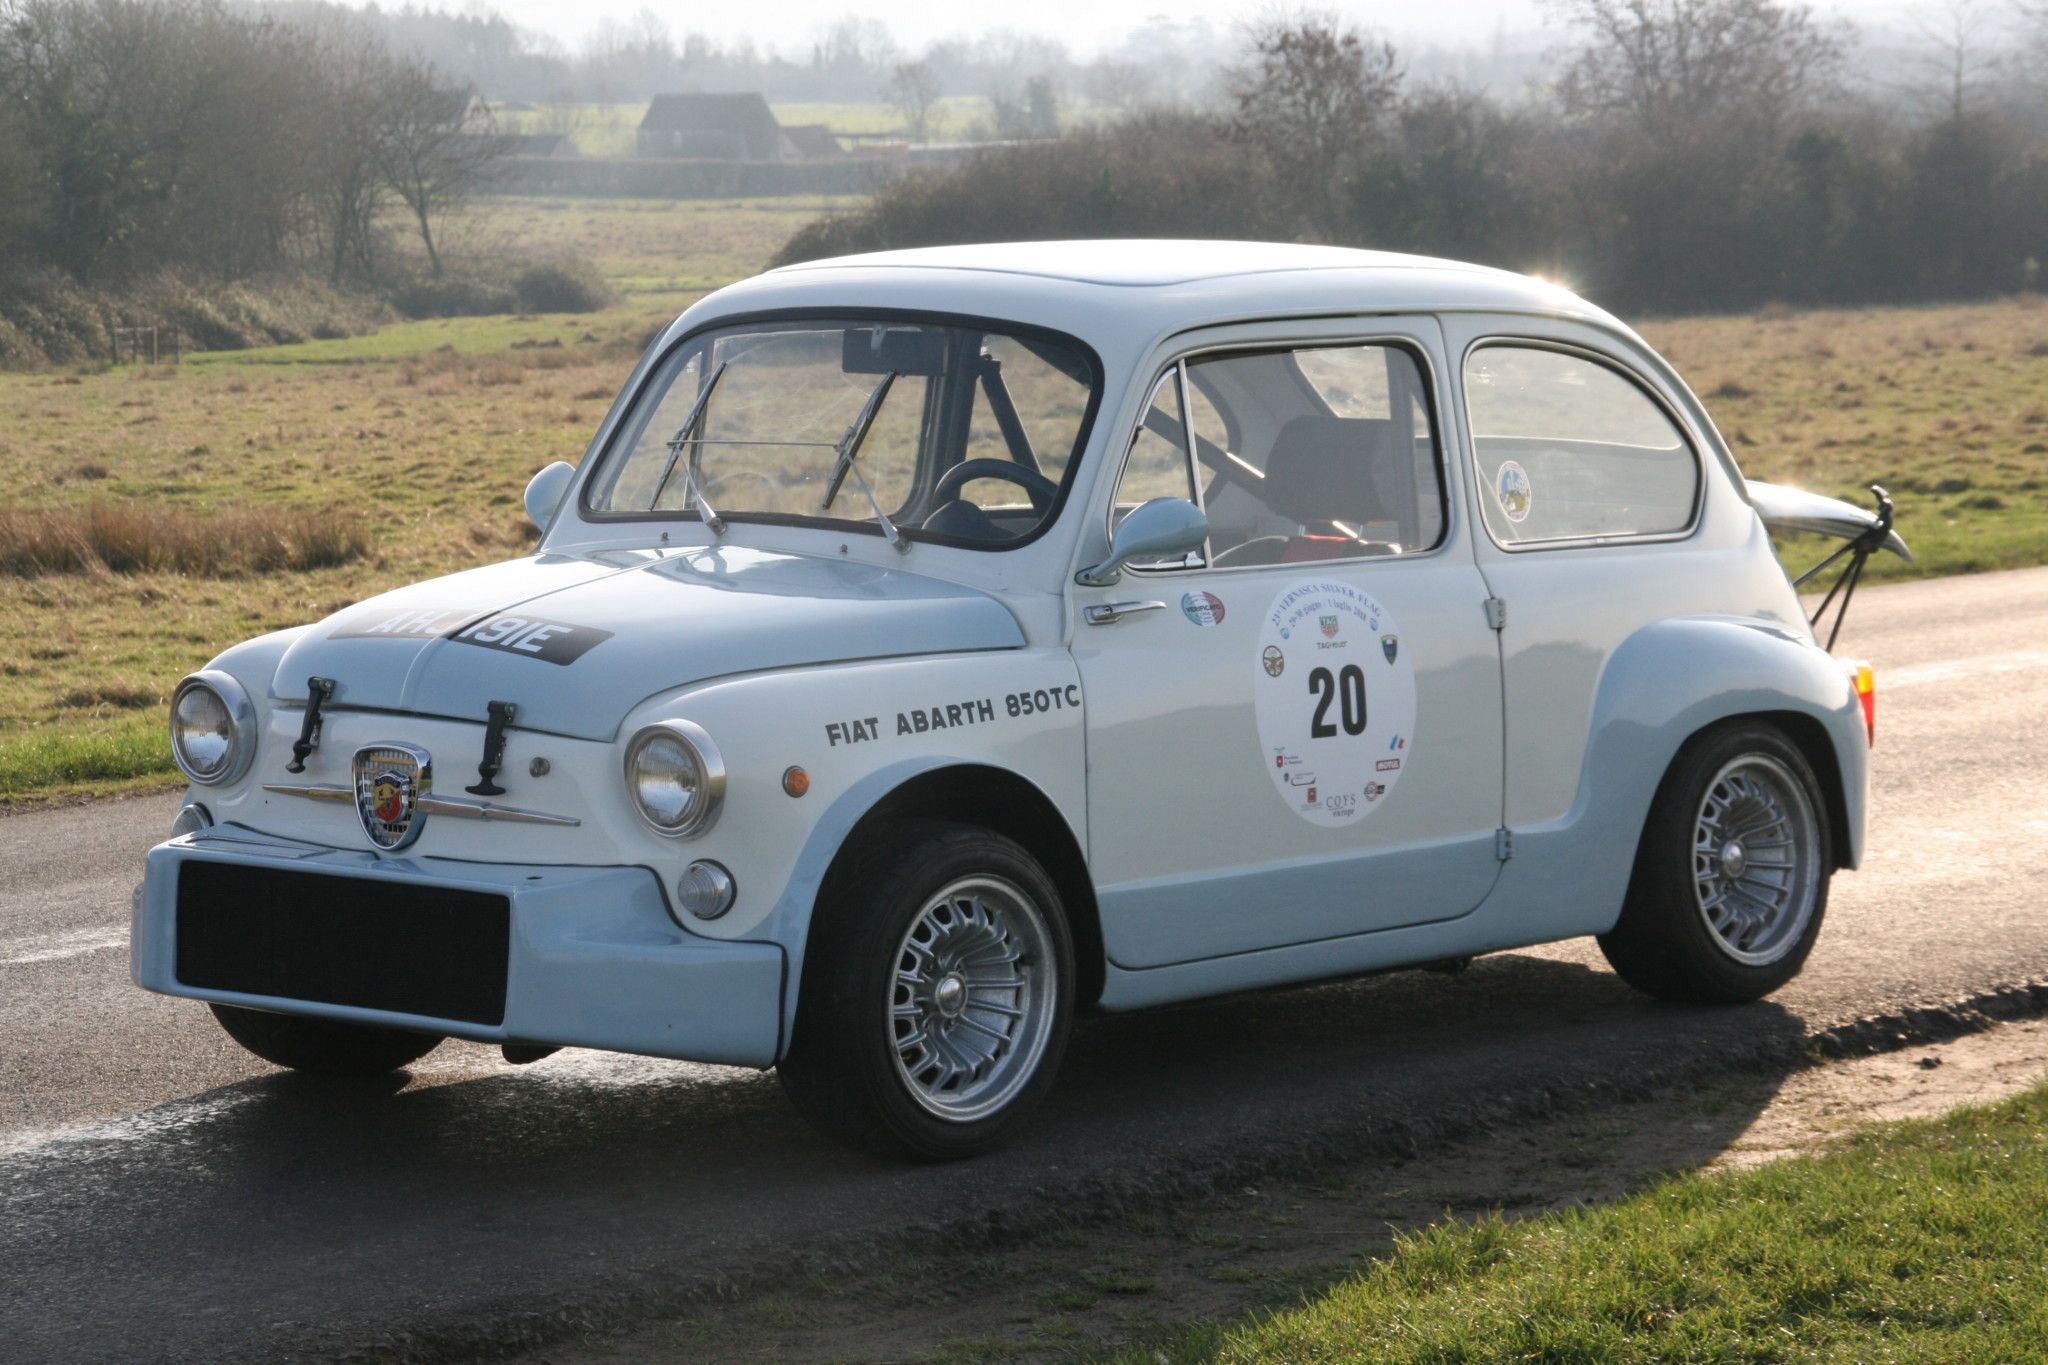 1963 Fiat Abarth 850tc Berlina With Images Classic Cars Fiat